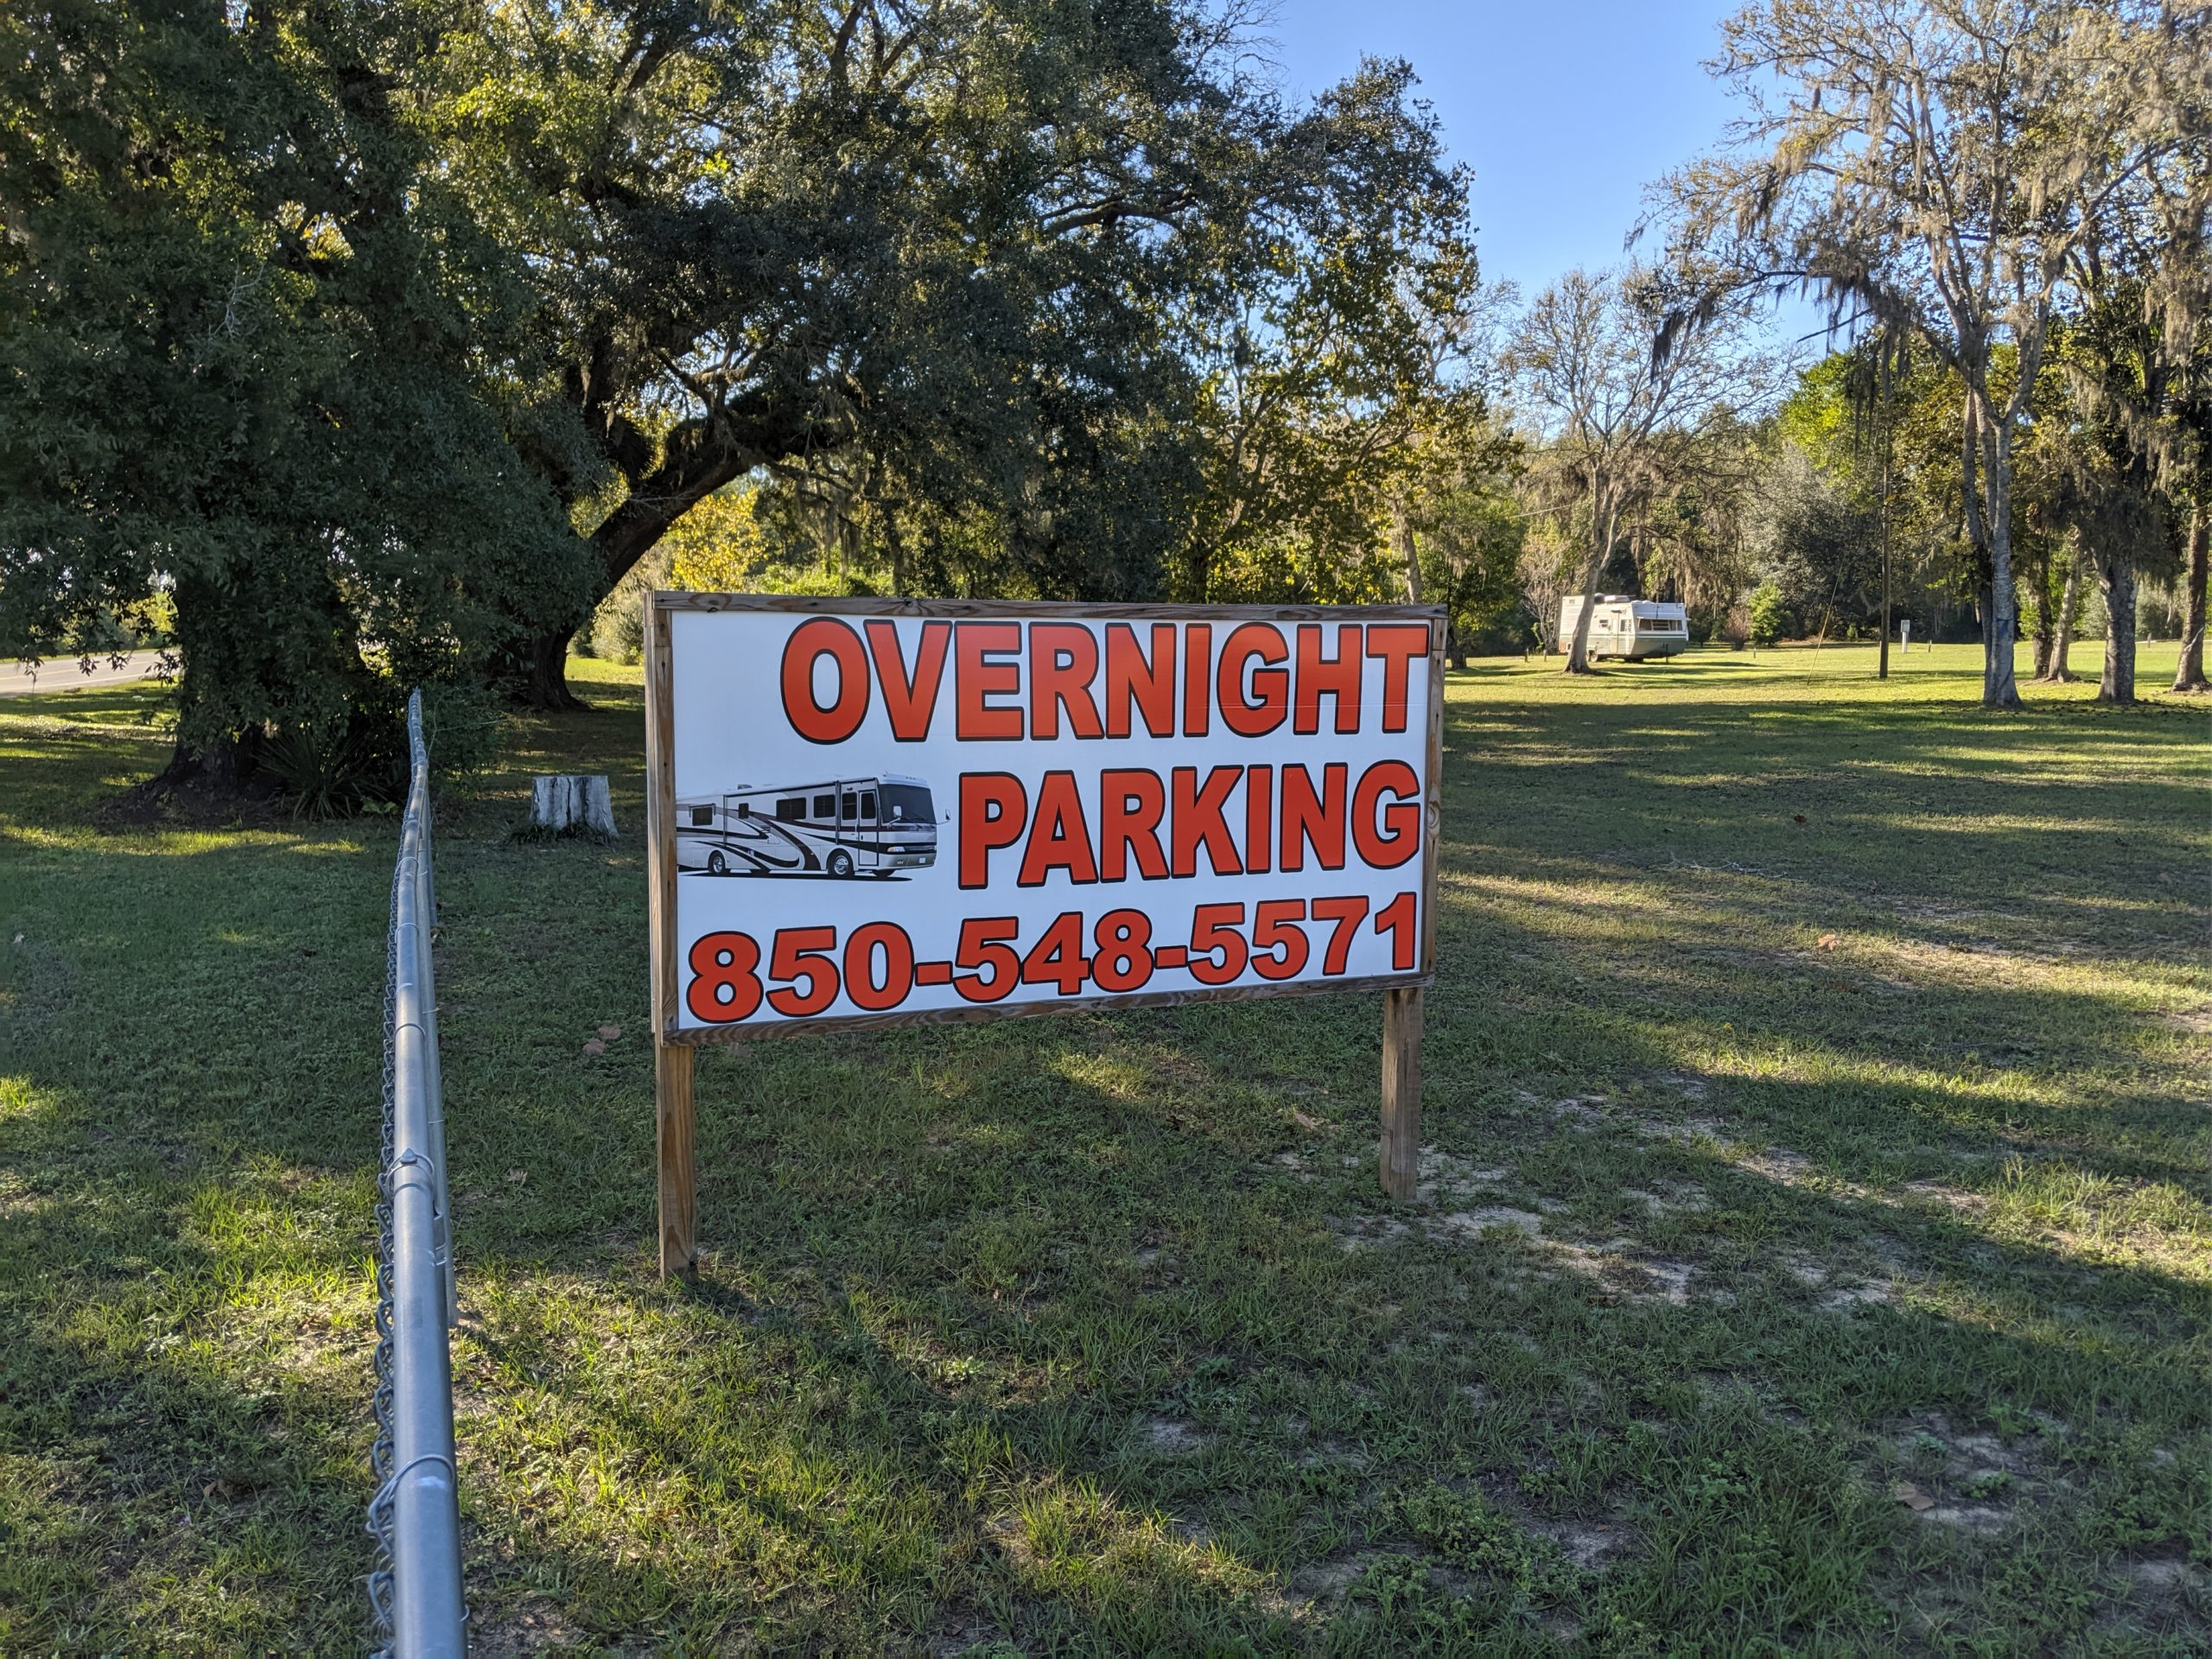 Overnight Parking Available 850-548-5571 for more information